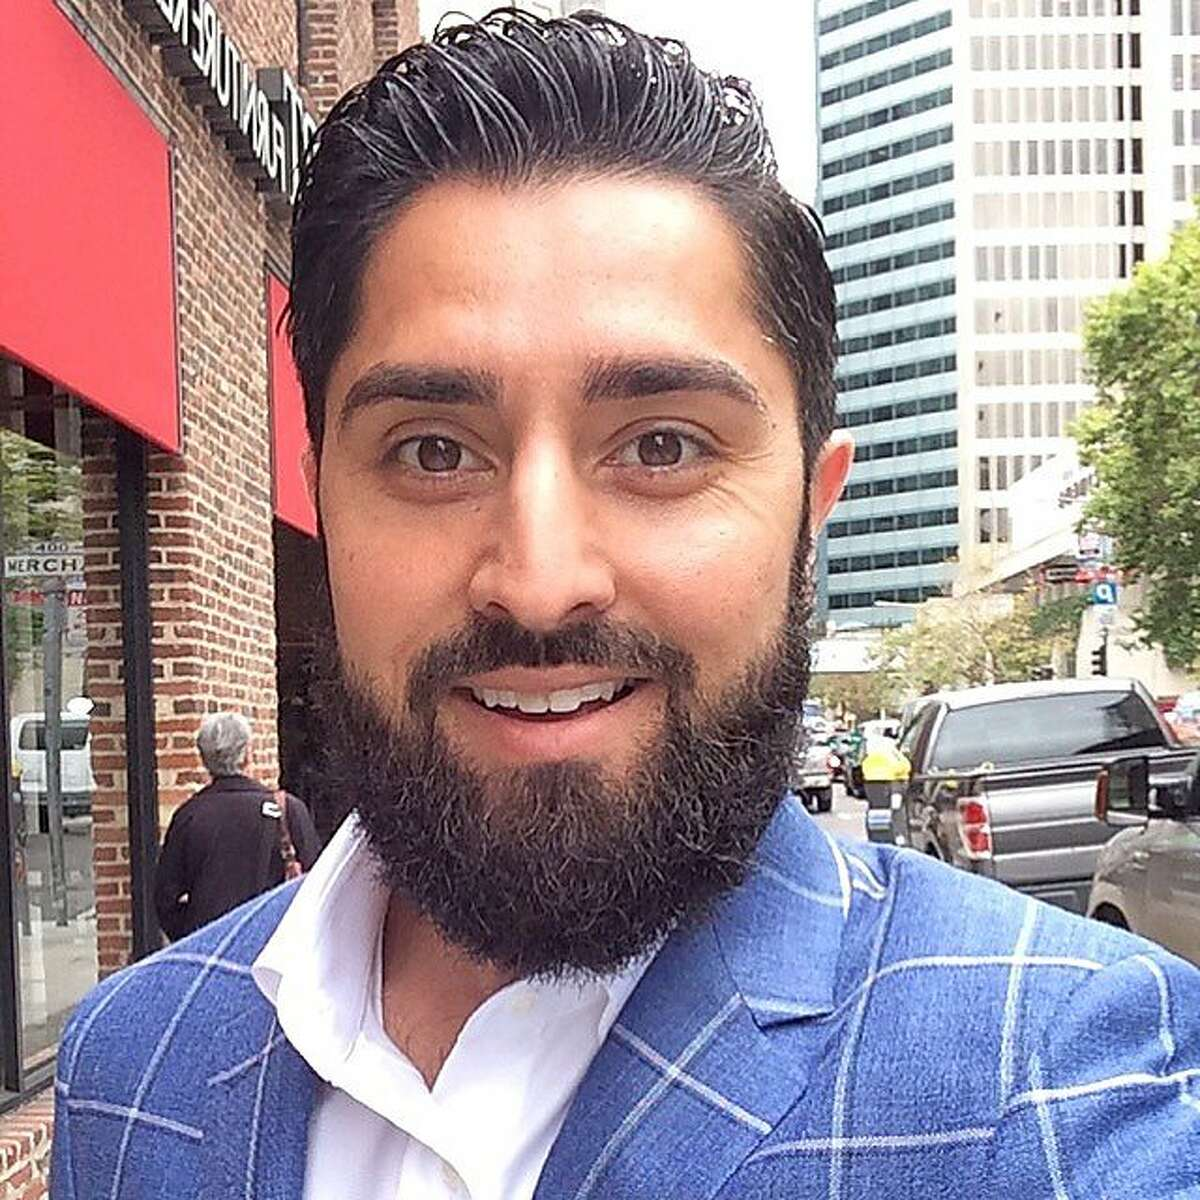 """Real estate agent Roh Habibi, who is one of three local agents staring in """"Million Dollar Listing San Francisco,"""" tells us what's on his iPhone."""